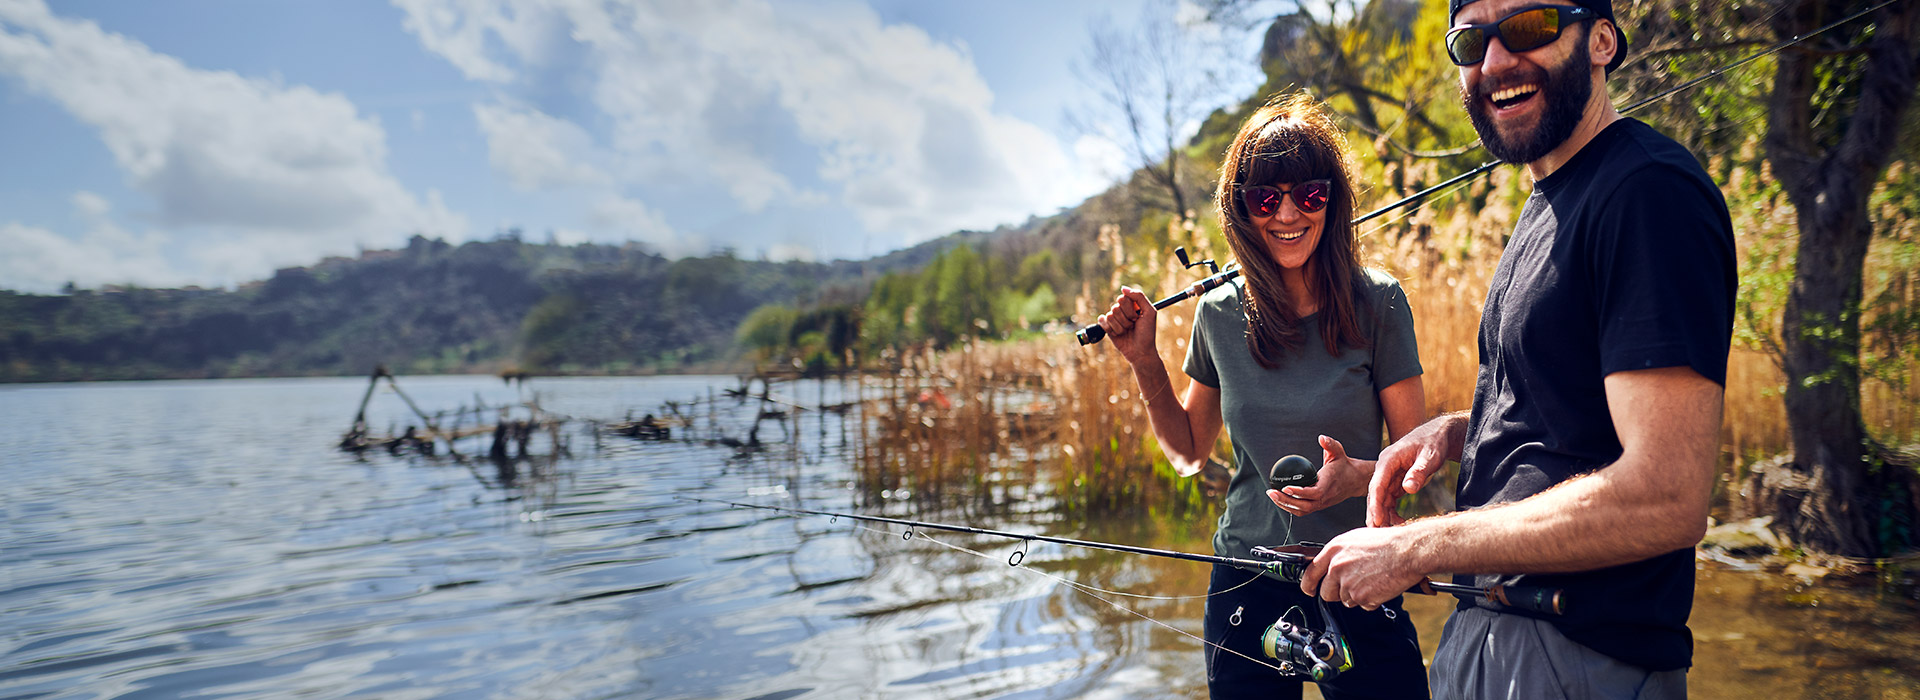 Grab your rods and enjoy local nature!Deeper sonar from R 3,349.00